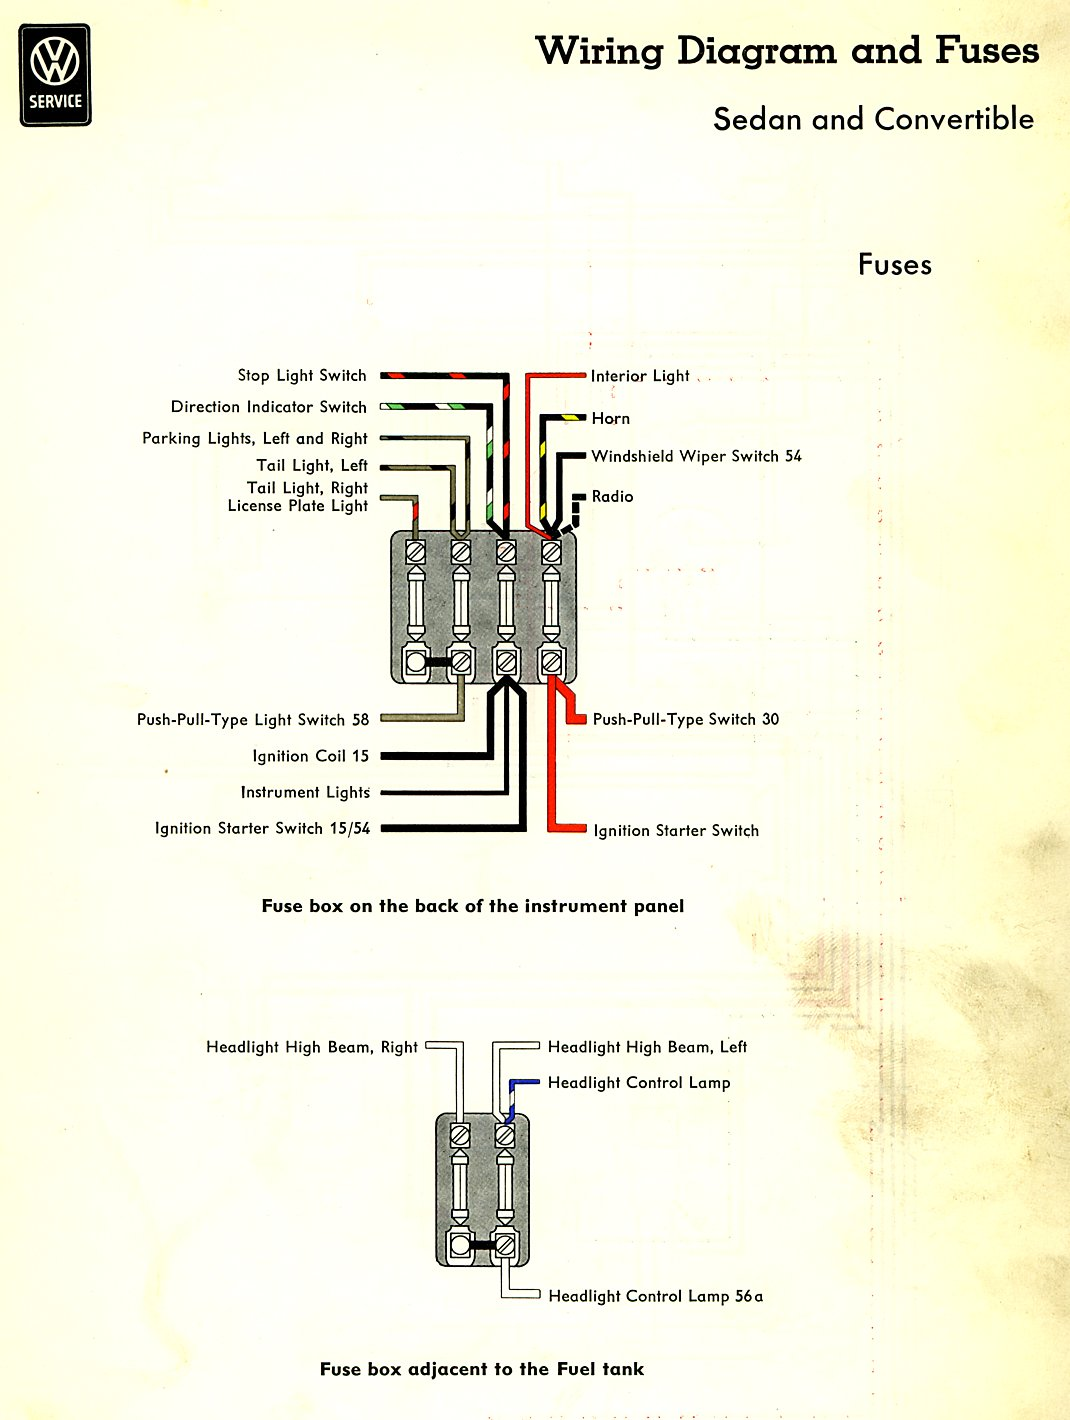 Type 1 Wiring Diagrams 1966 Porsche Diagram